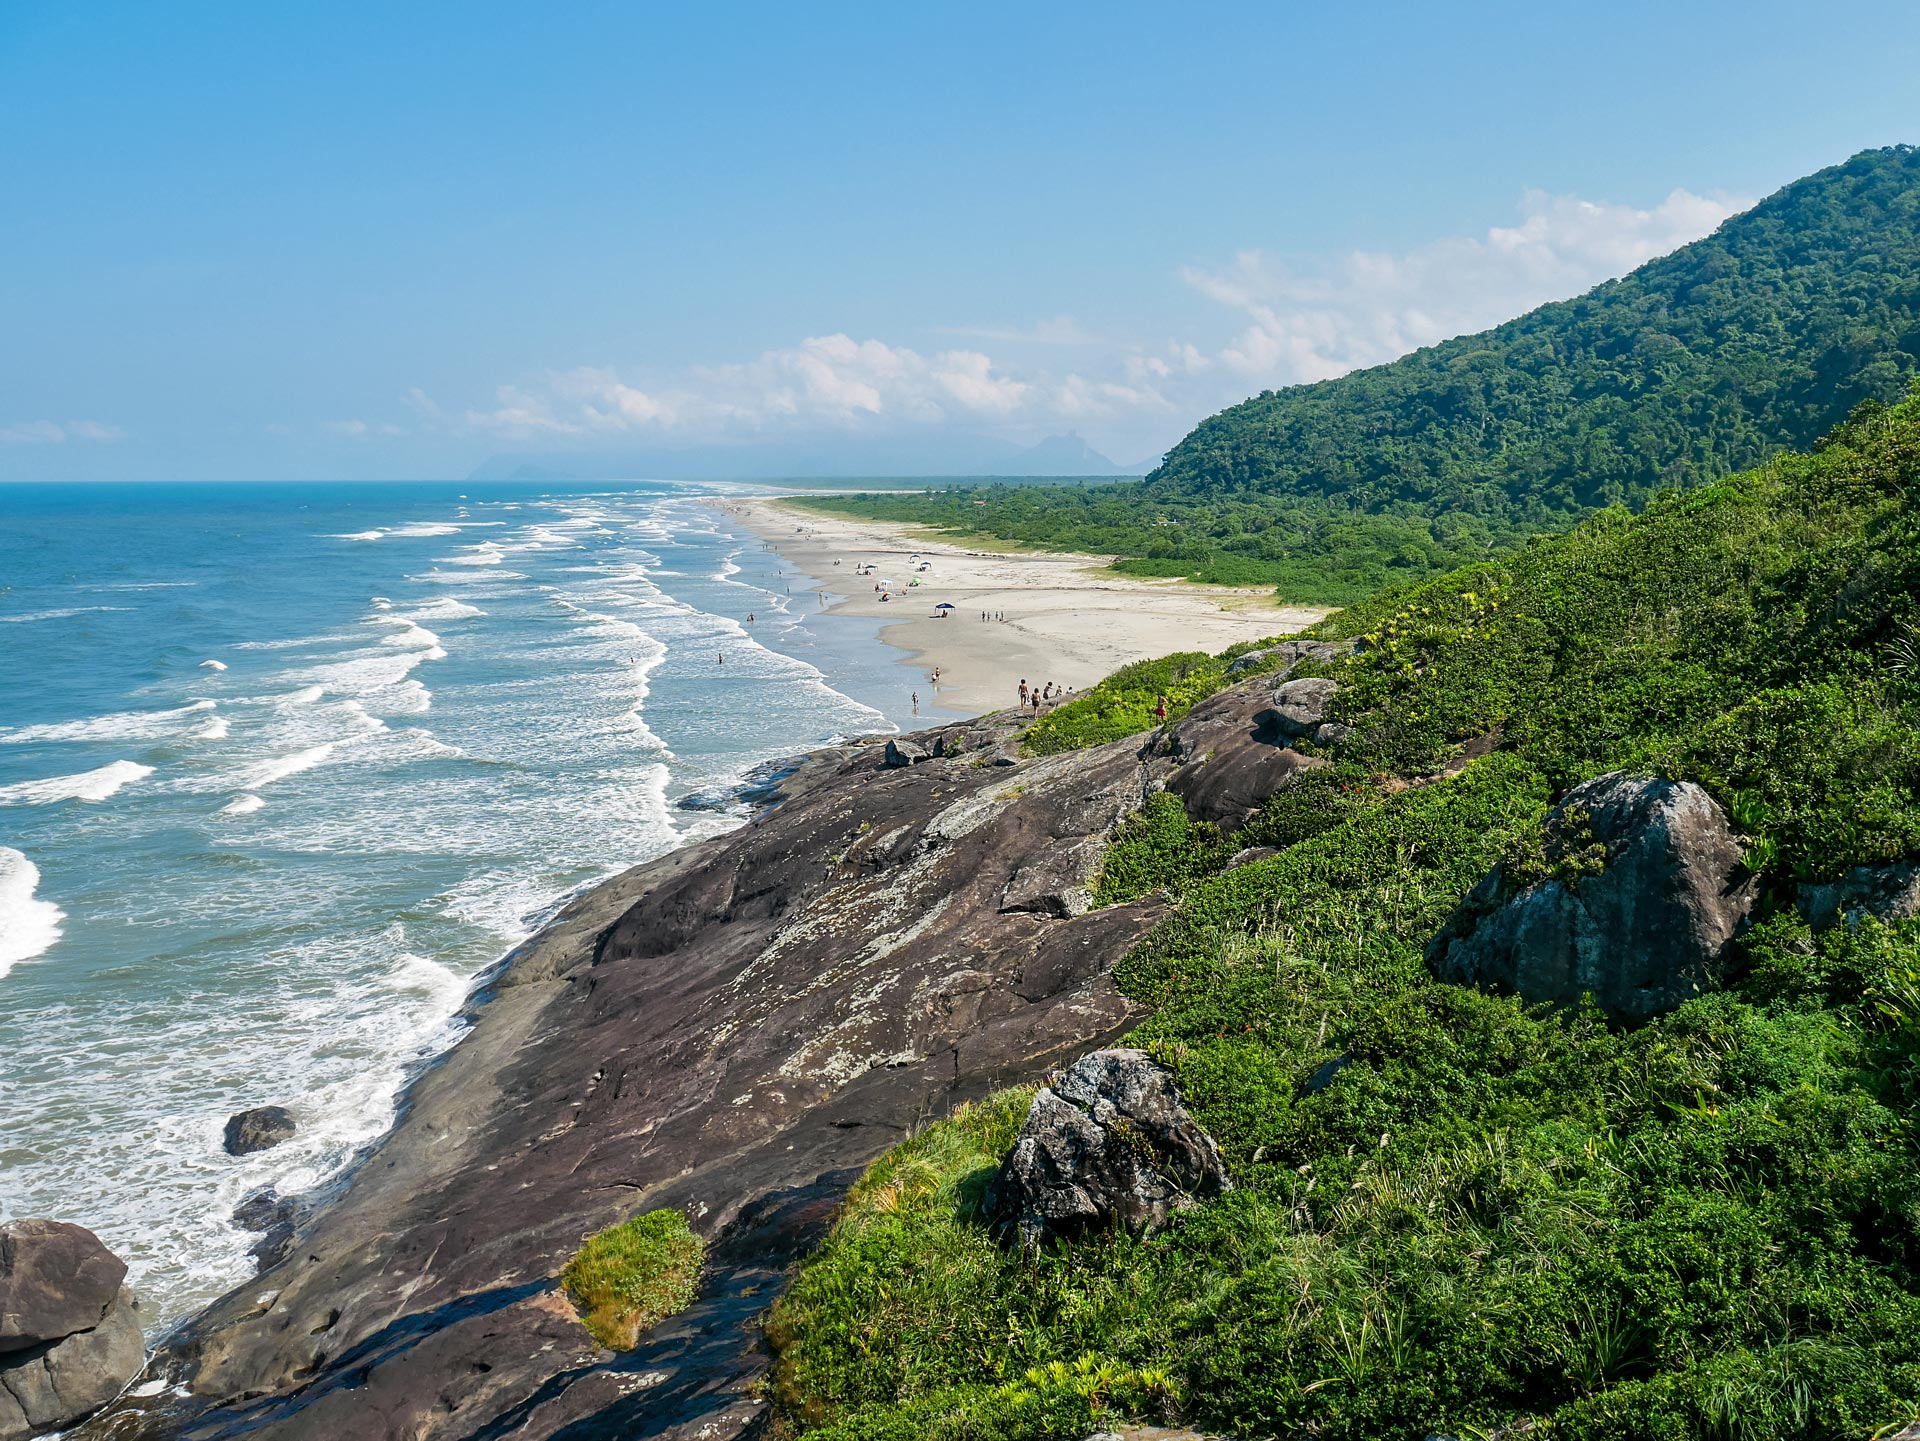 Ocean, beach, cliffs, green mountains of Barra do Una, Brazil